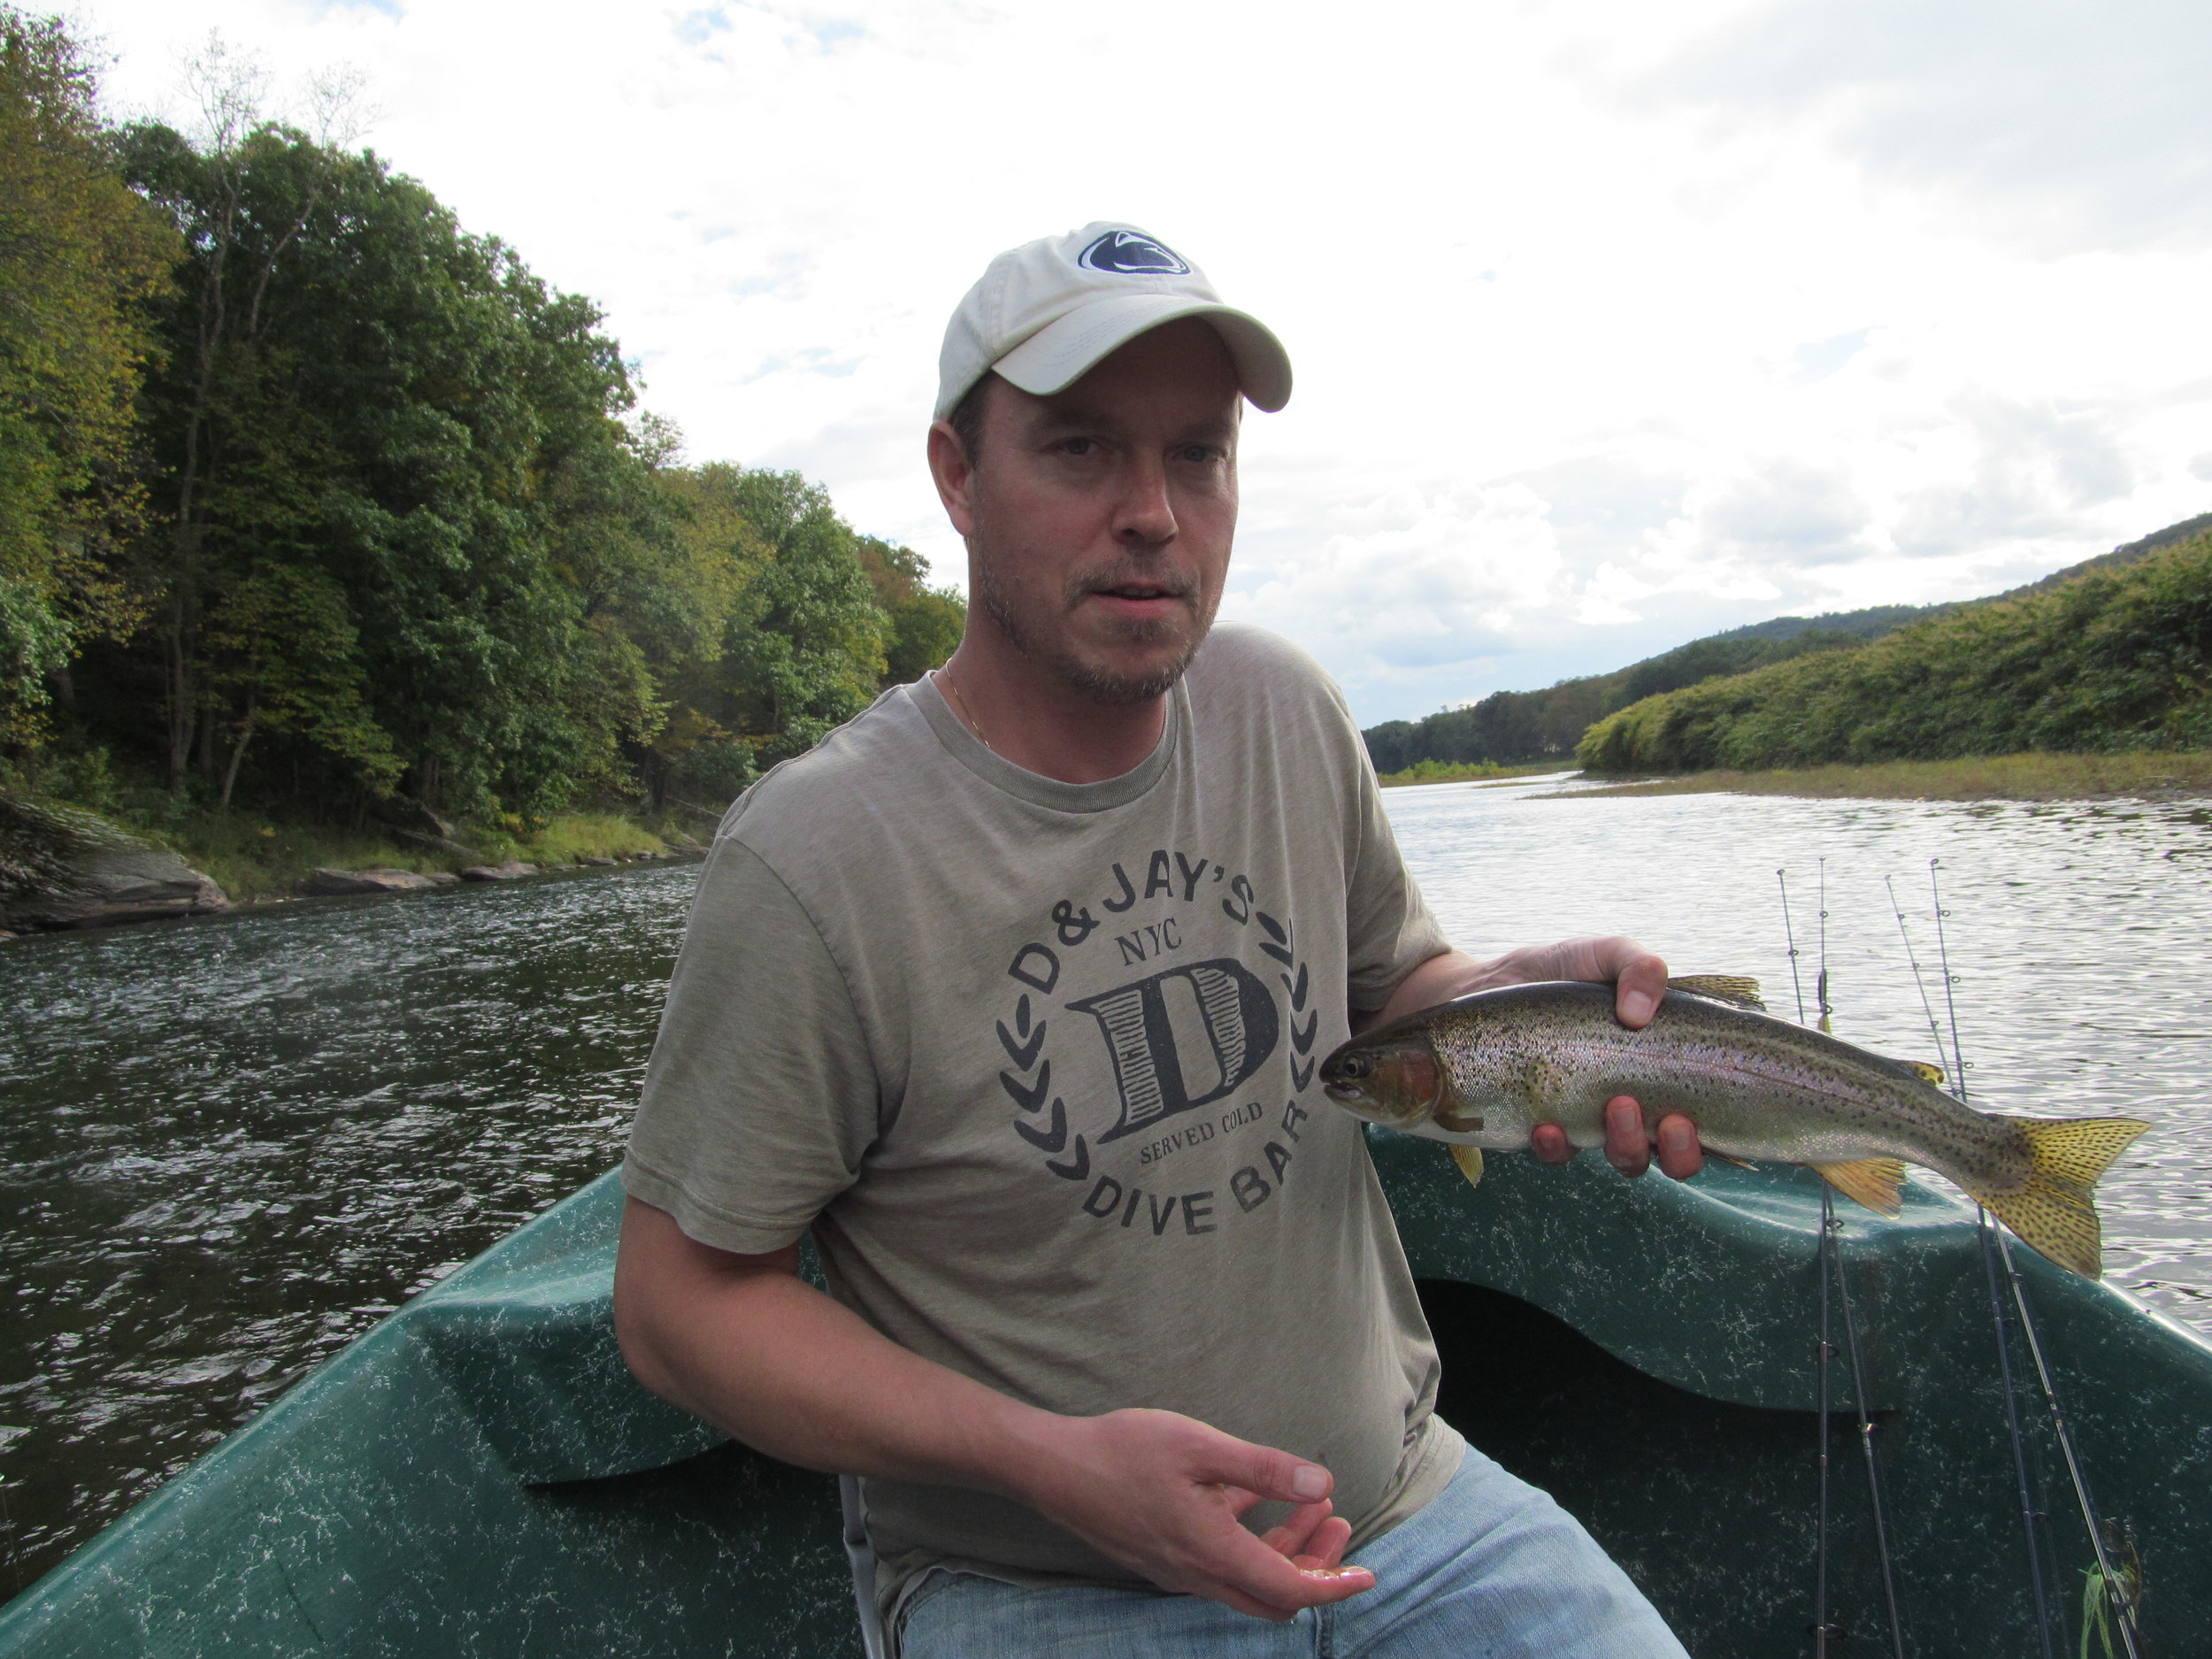 Doug J. completes the trifecta with a healthy Rainbow trout!